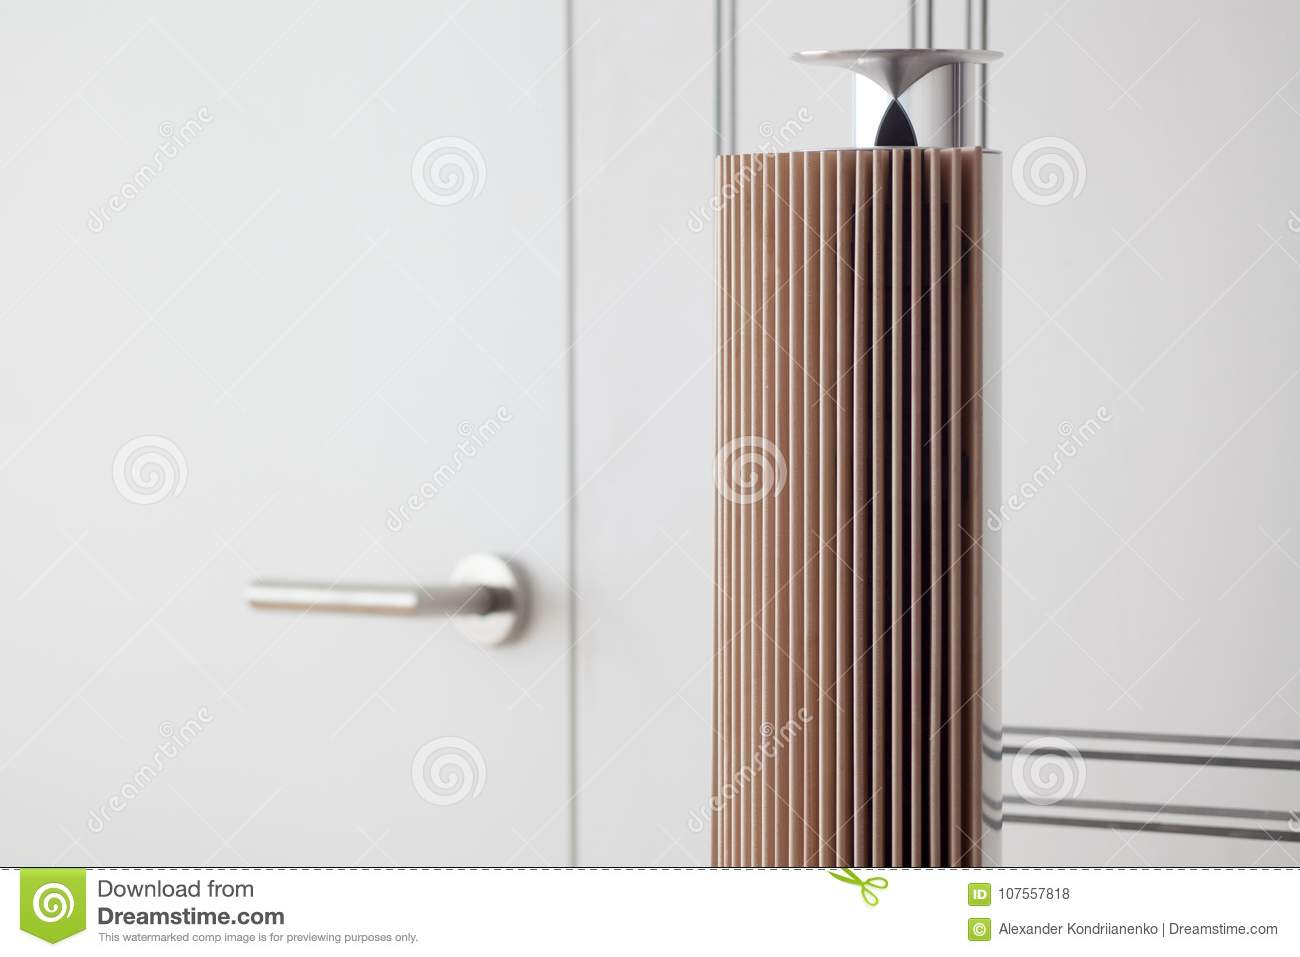 Download A Minimalistic Lighting Element In The Interior Made Of Metal And Wood. Stock Photo & A Minimalistic Lighting Element In The Interior Made Of Metal And ...